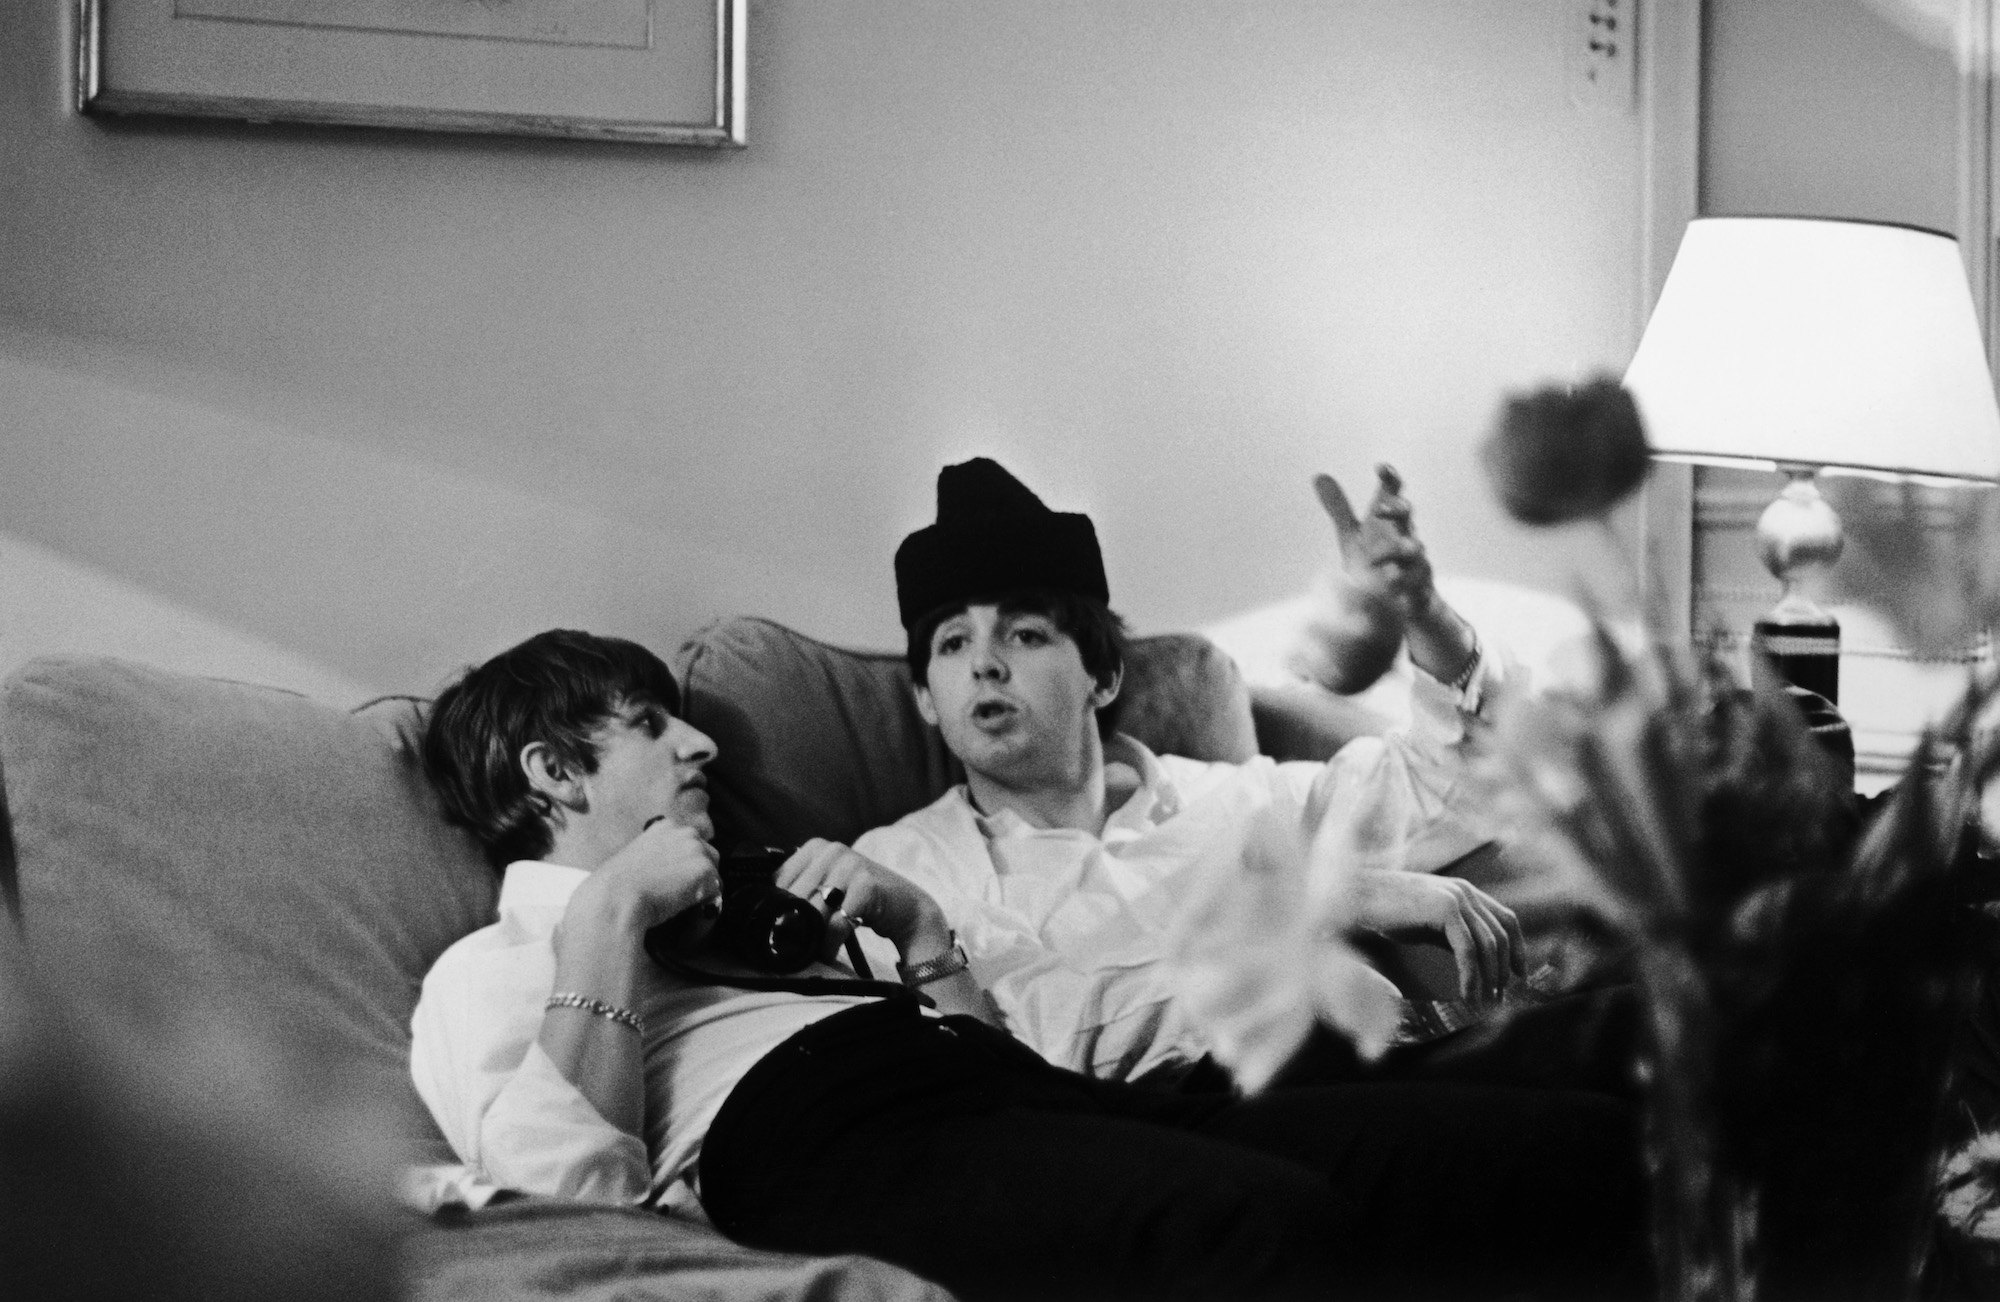 Did Paul McCartney Tell Ringo How to Play Drums on Beatles